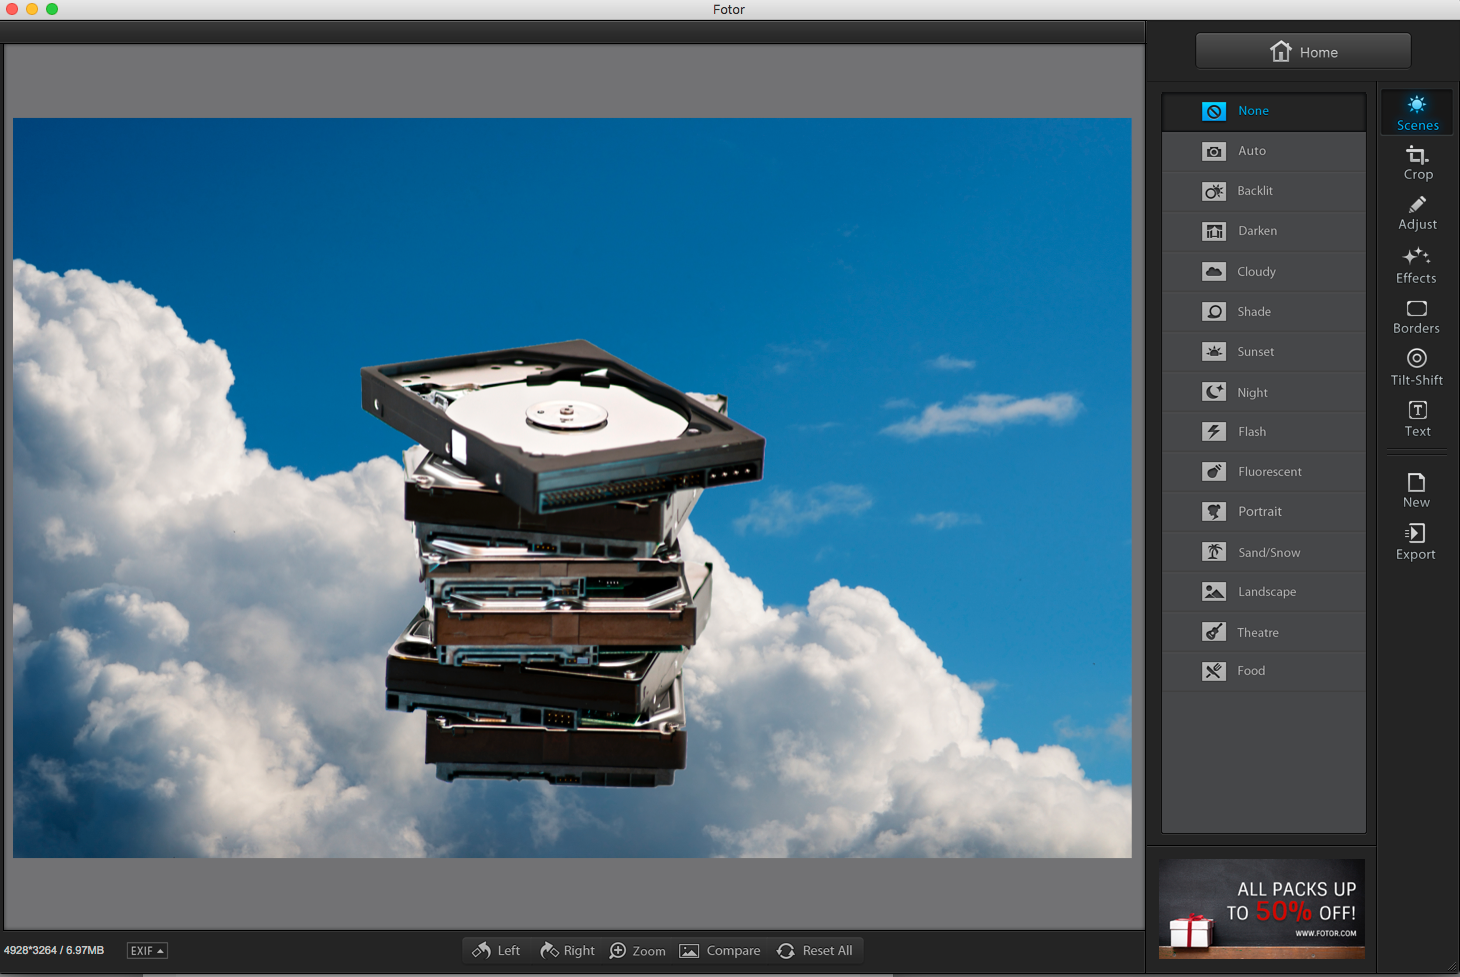 You can see a wide range of editing tools in the toolbar on the right, along with multiple presets